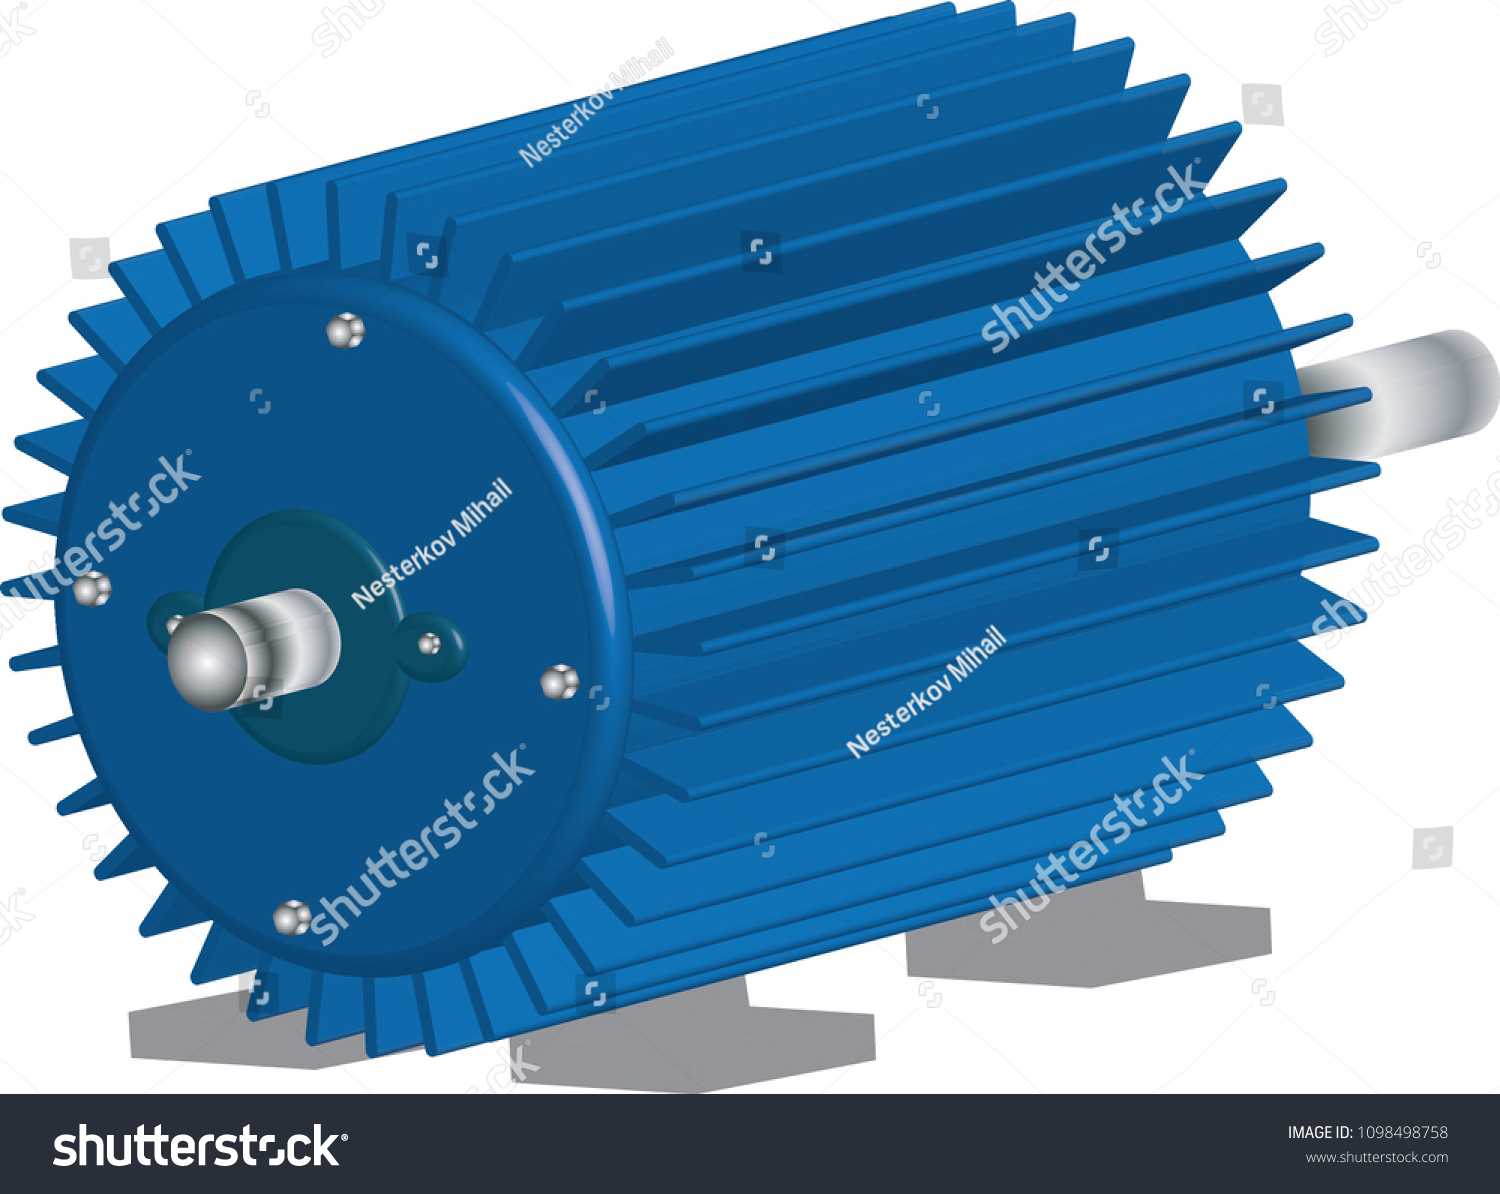 Threephase Asynchronous Motor Stock Vector 1098498758 - Shutterstock